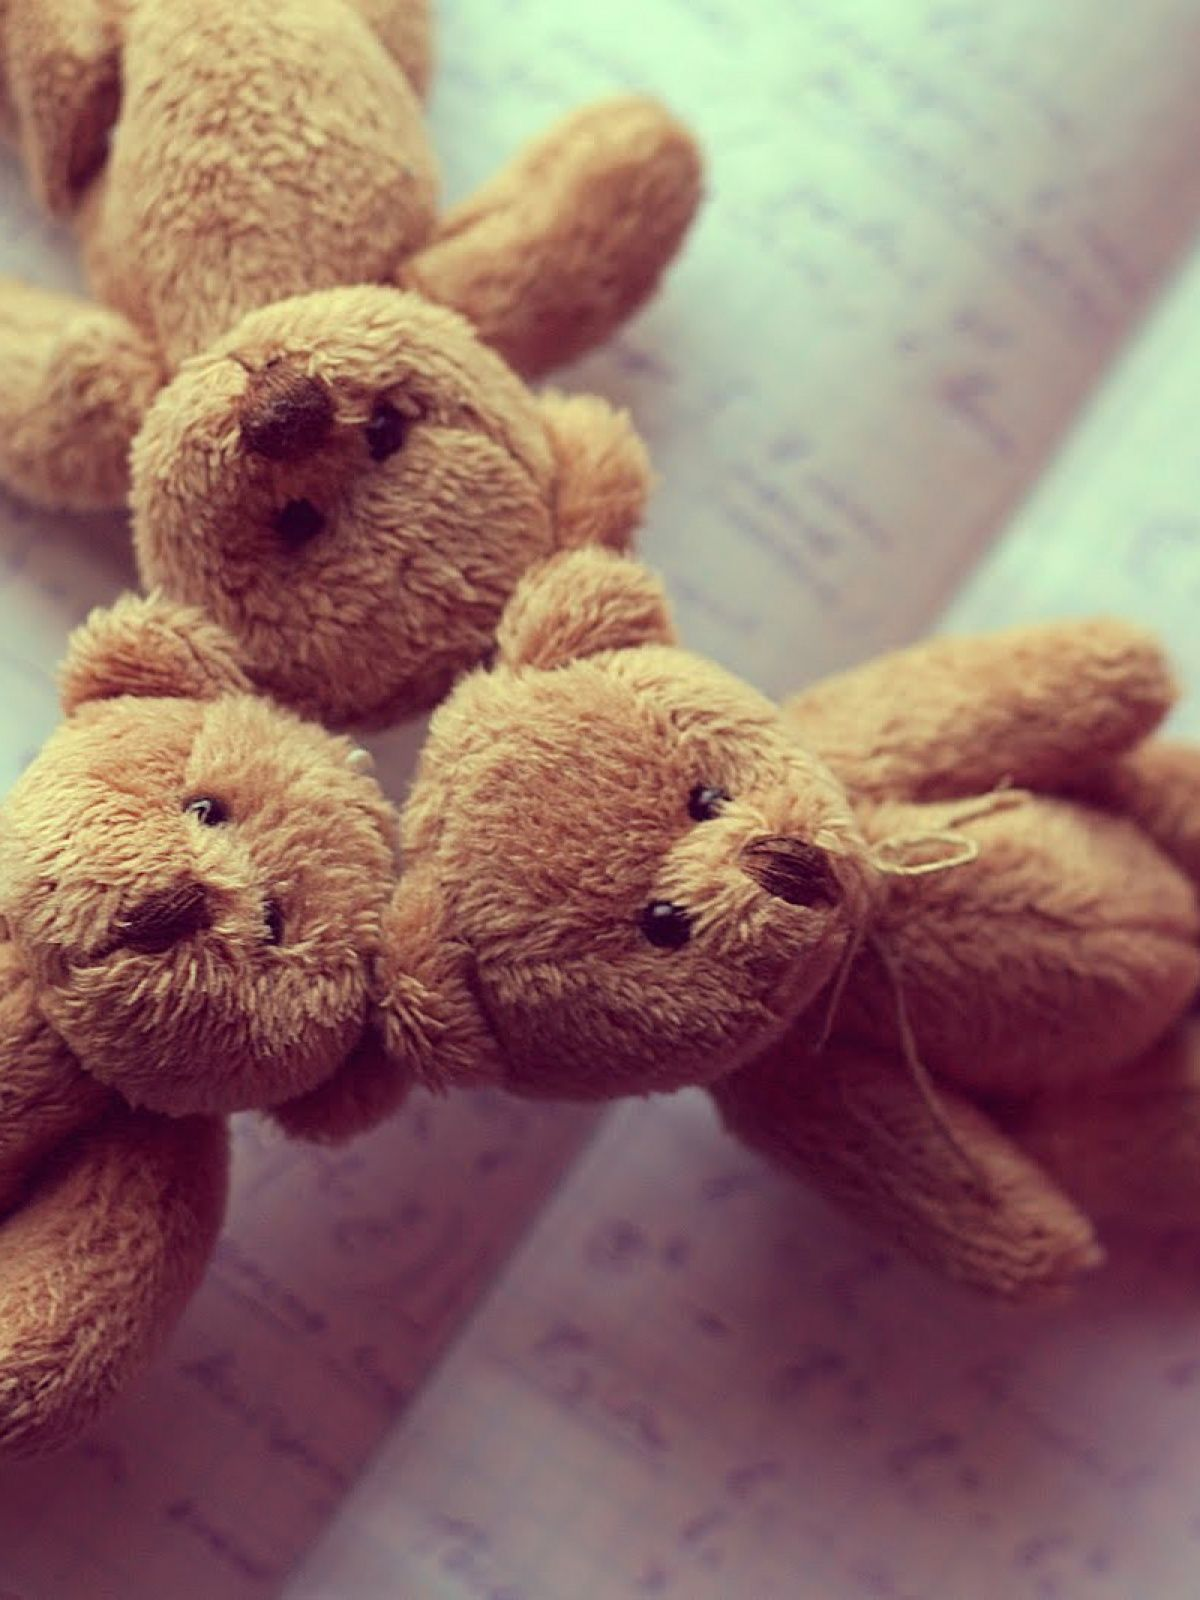 Cute teddy bear live wallpaper for android free download 9apps cute teddy bear live wallpaper for android free download 9apps voltagebd Gallery